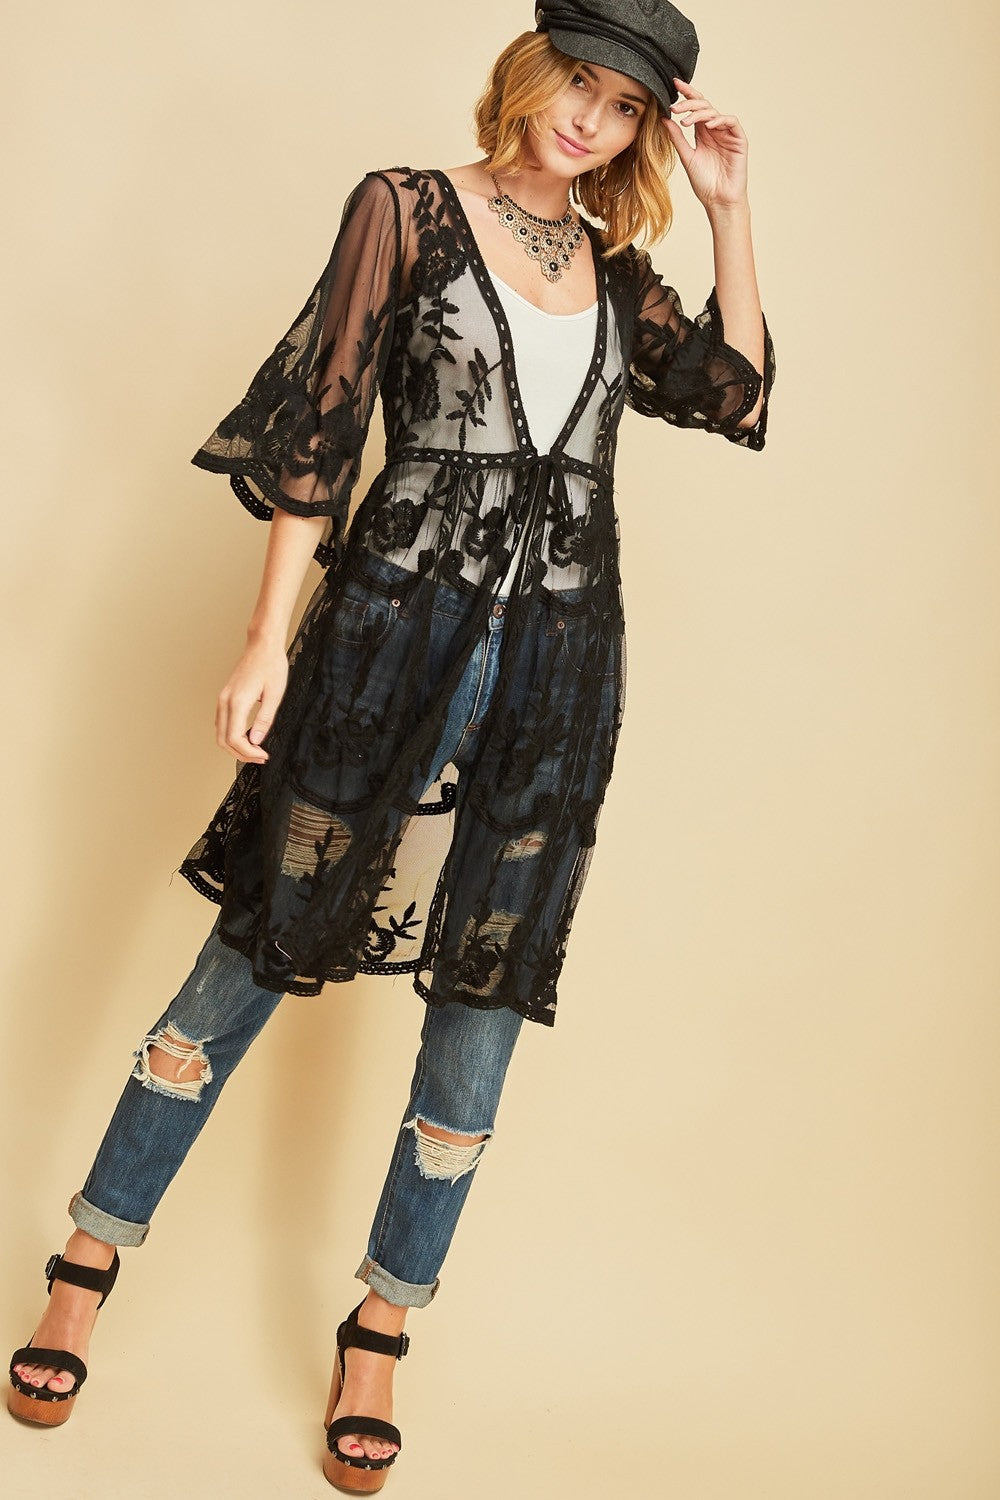 Front full view woman wearing black empire waist tie front sheer floral embroidered kimono and jeans